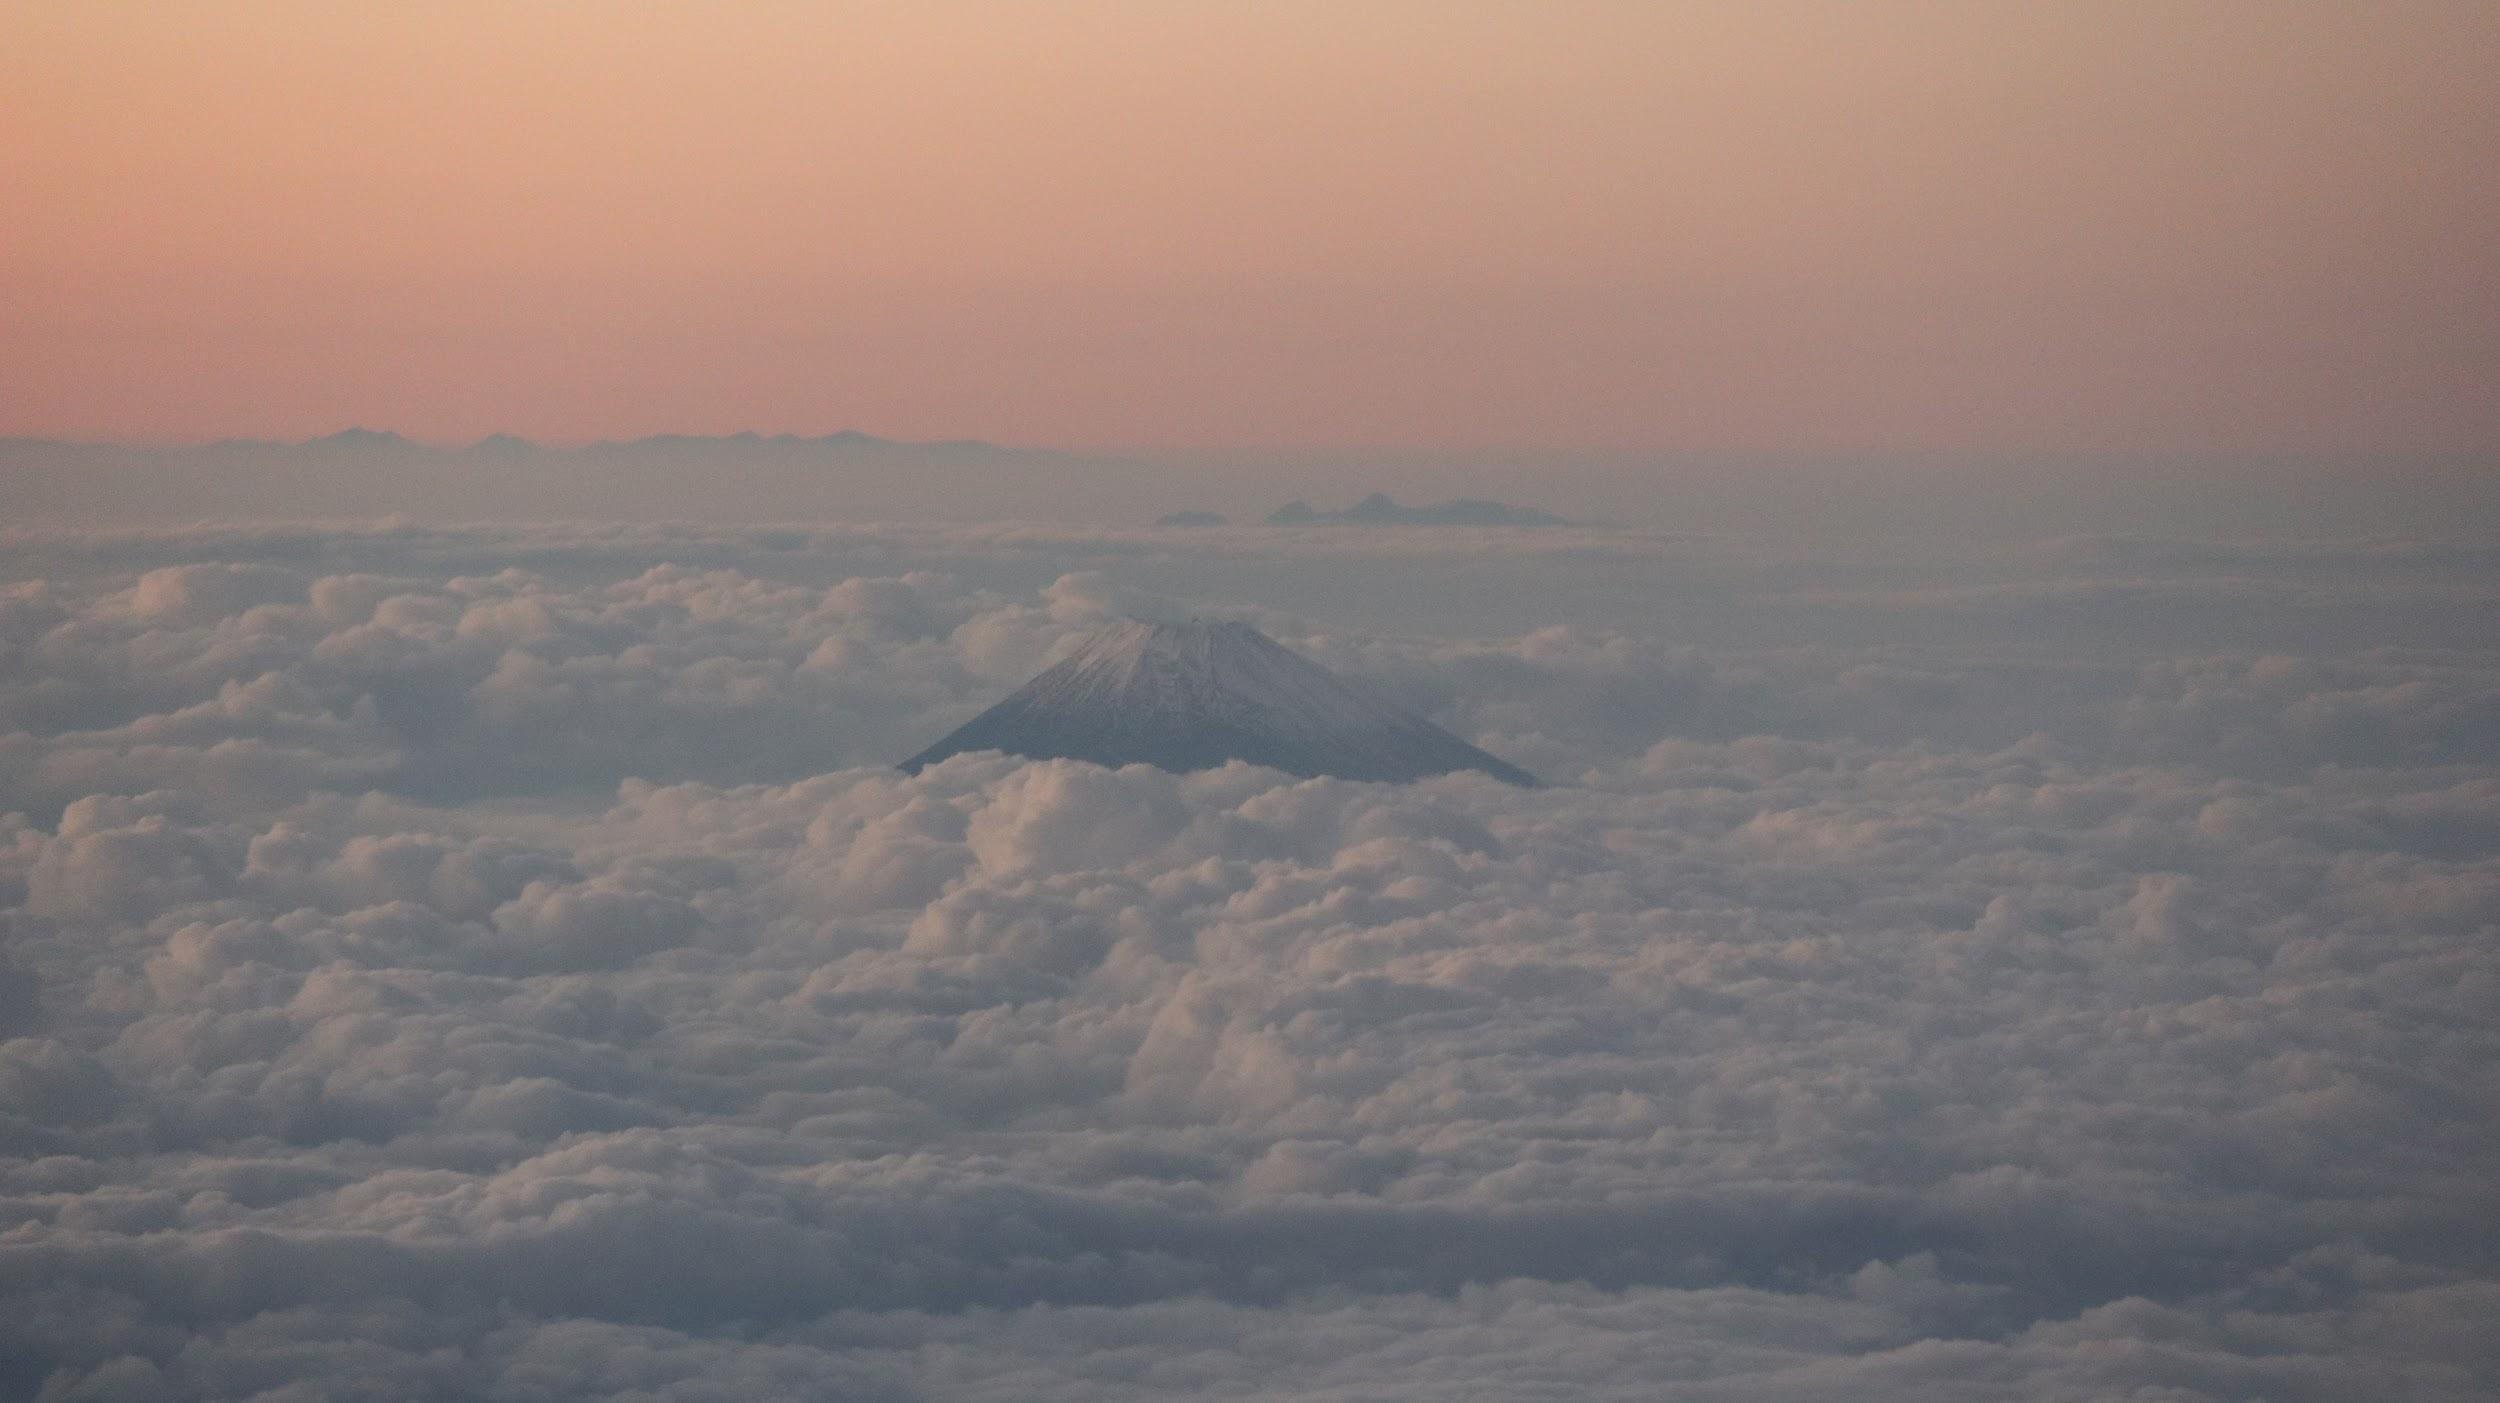 Mt. Fuji | Point Hacks